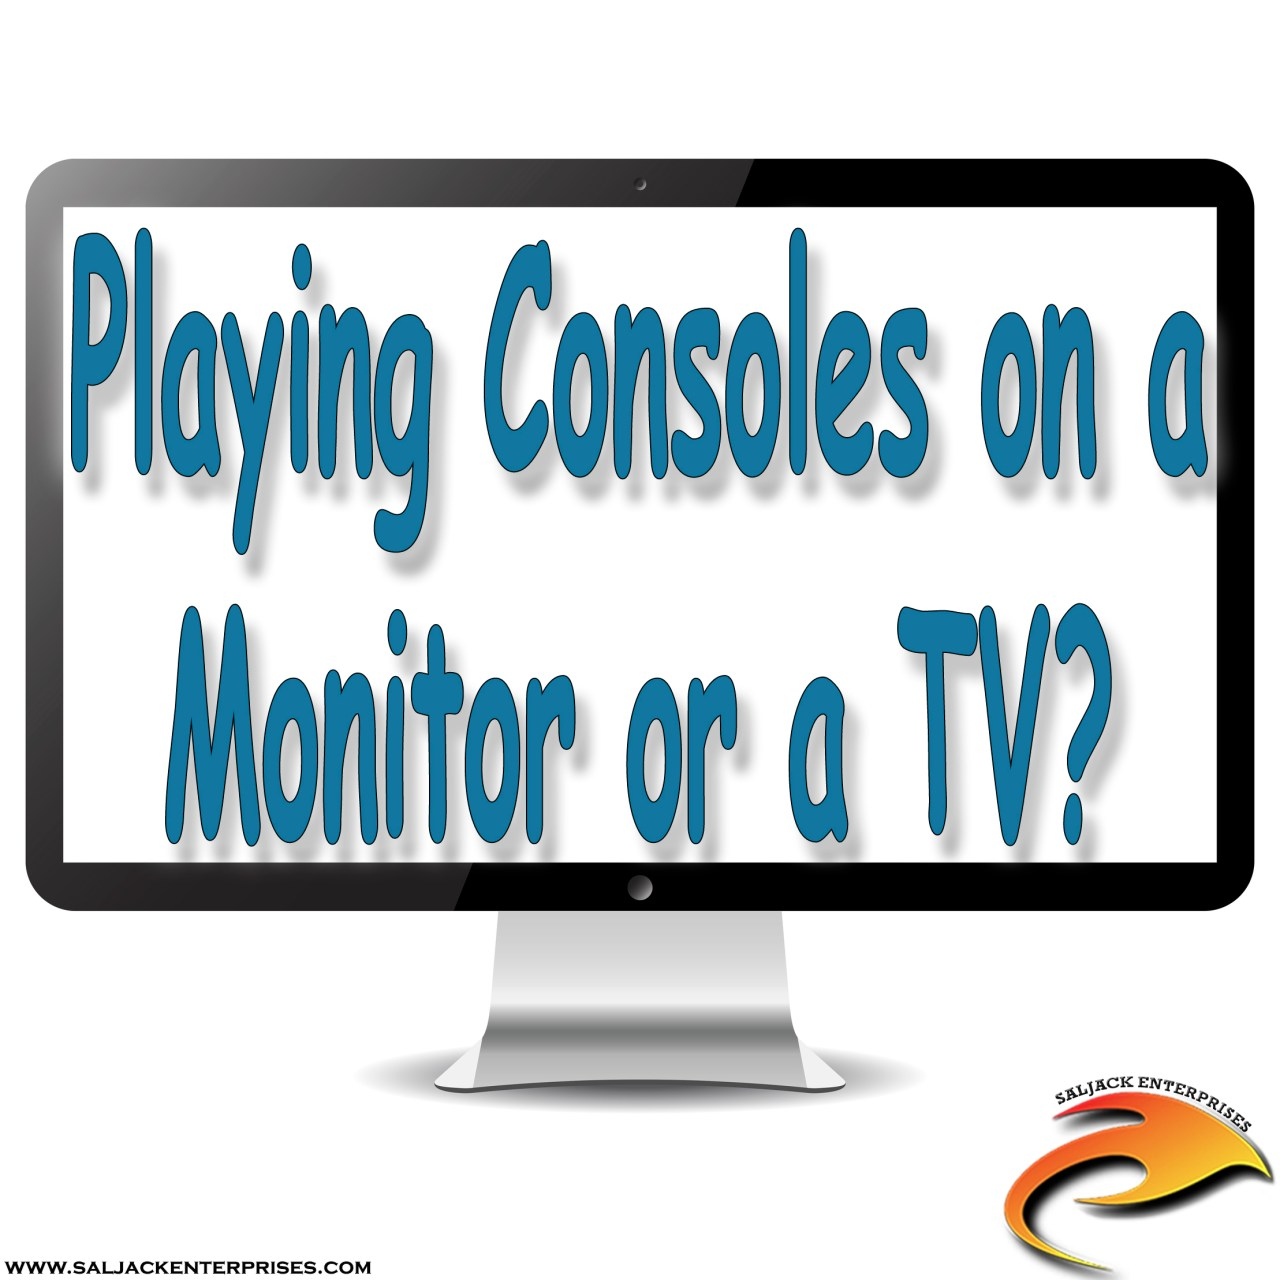 Playing Consoles on a Monitor or a TV? Presented by Saljack Enterprises. Gaming. Media & Entertainment.